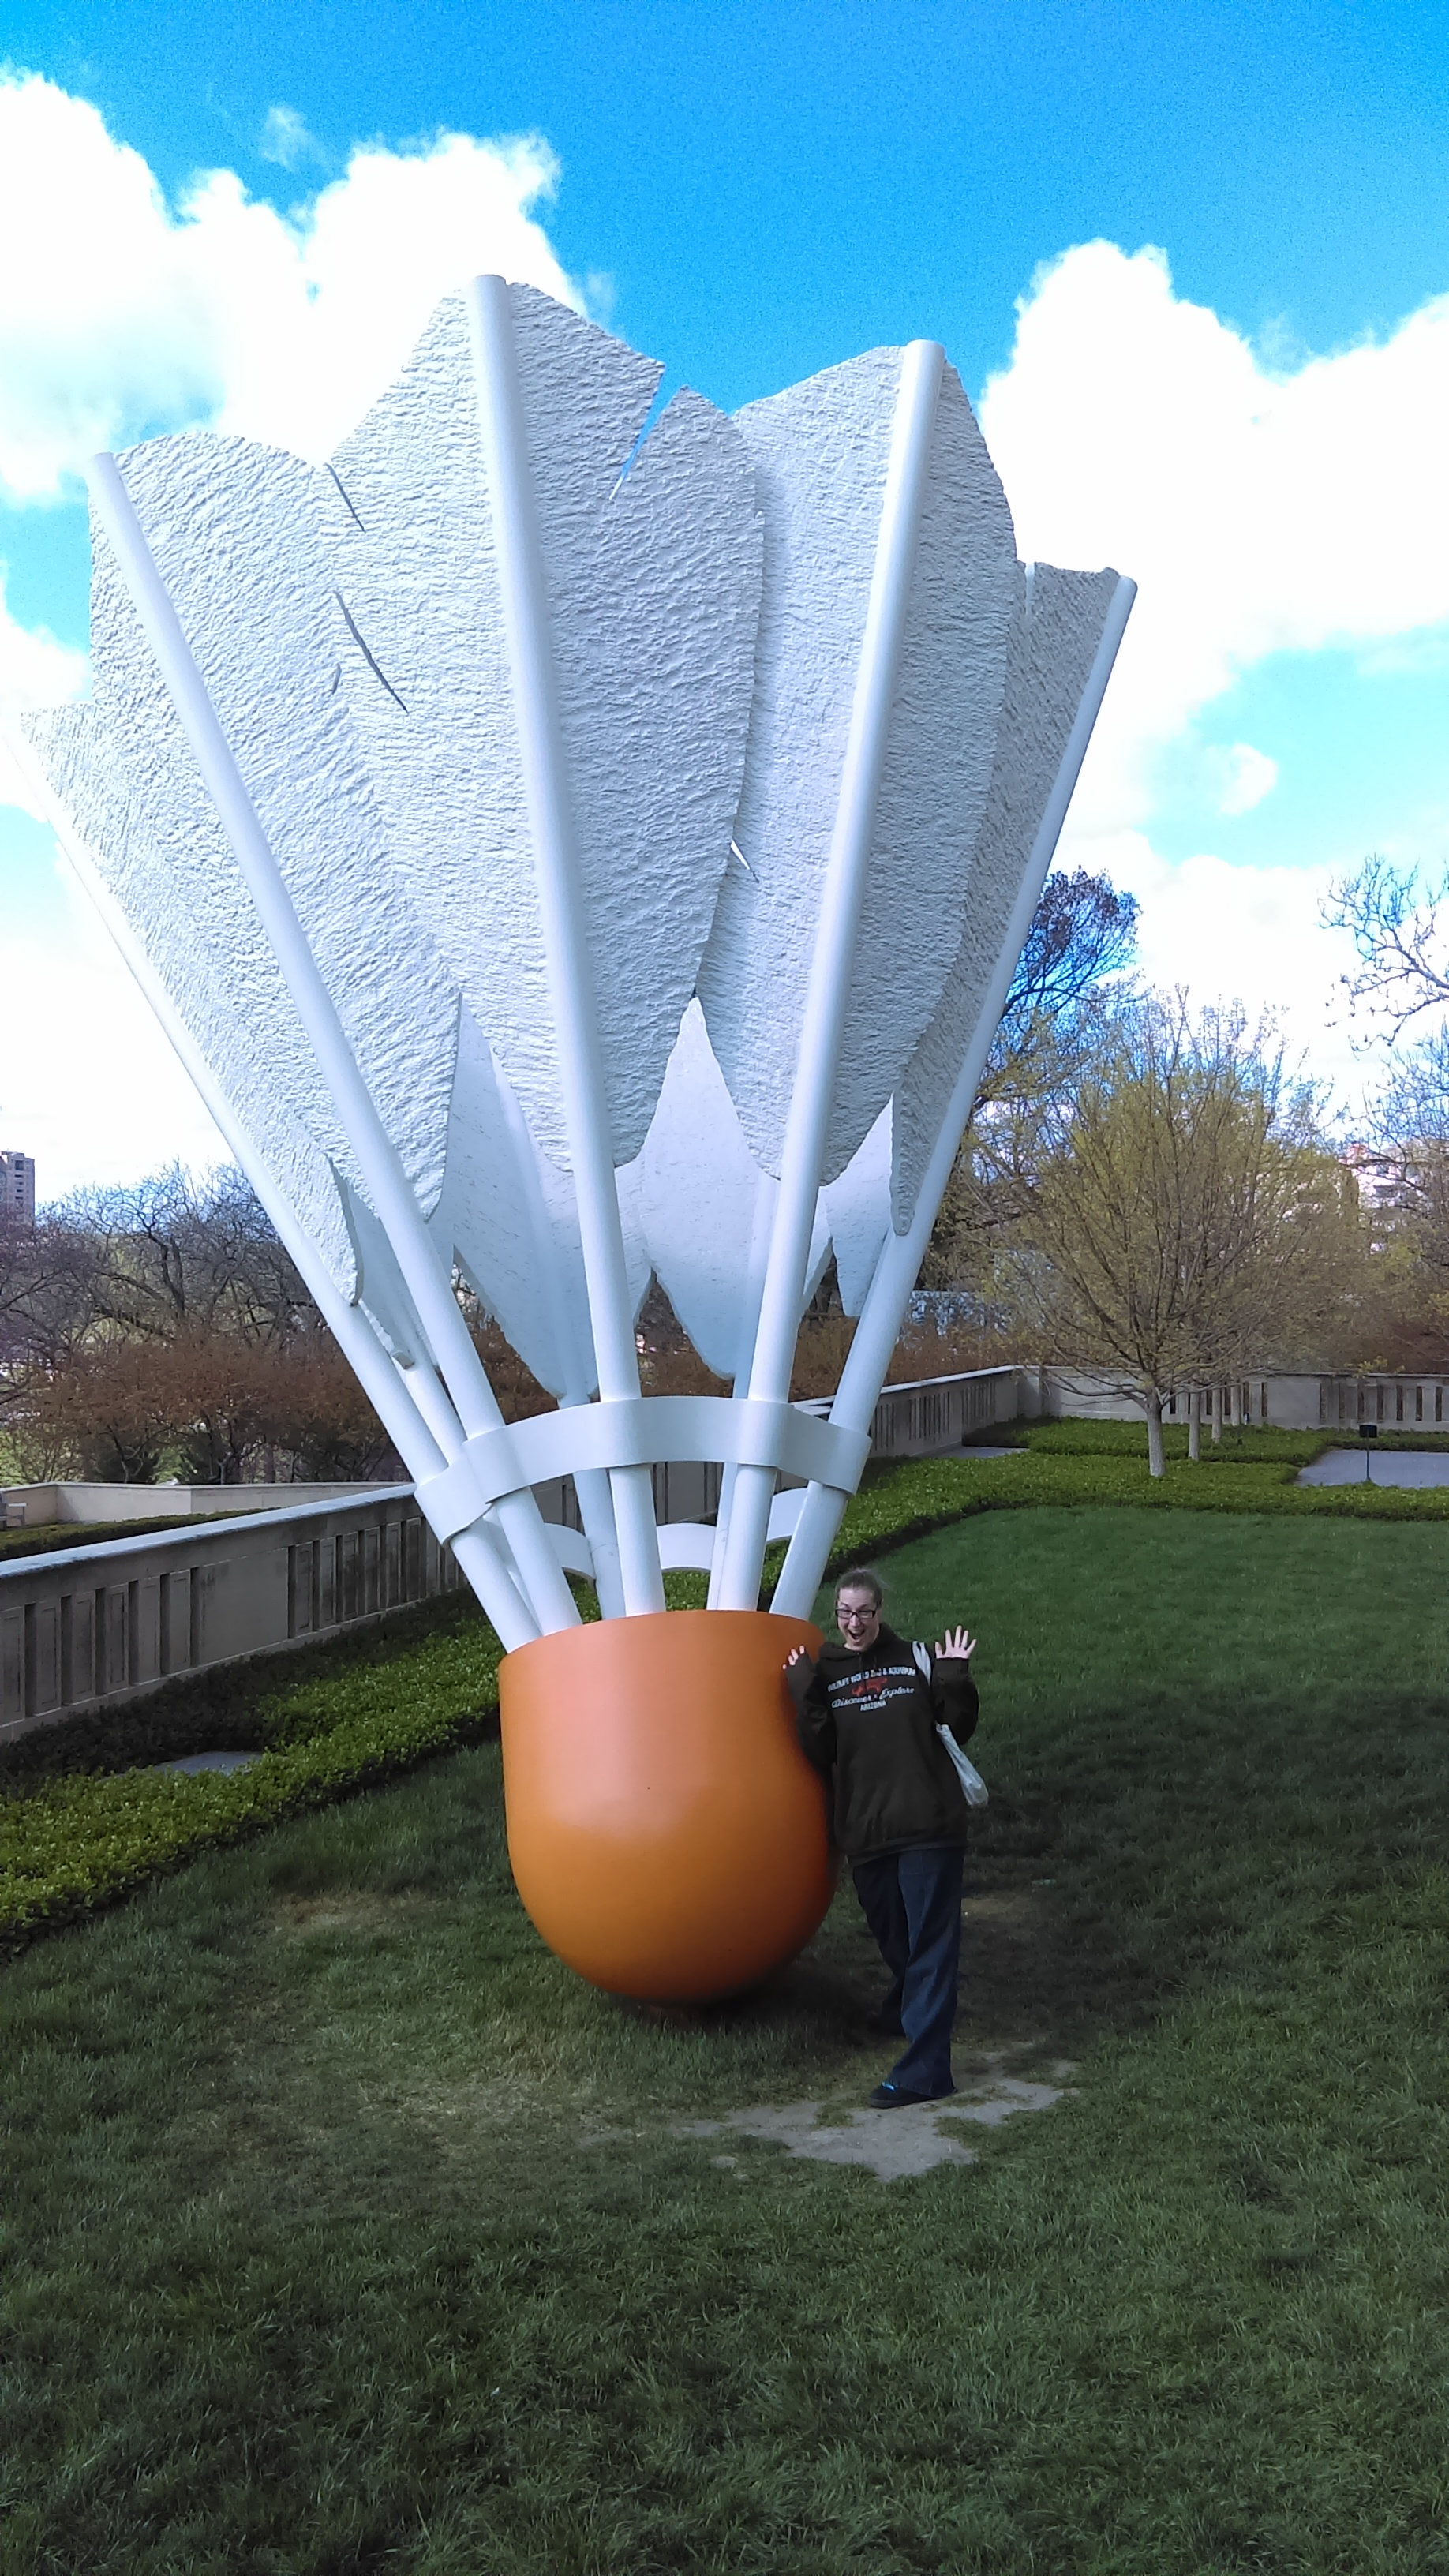 And some GIANT  shuttlecocks by Claes Oldenburg and Coosje van Bruggen (Me for scale).